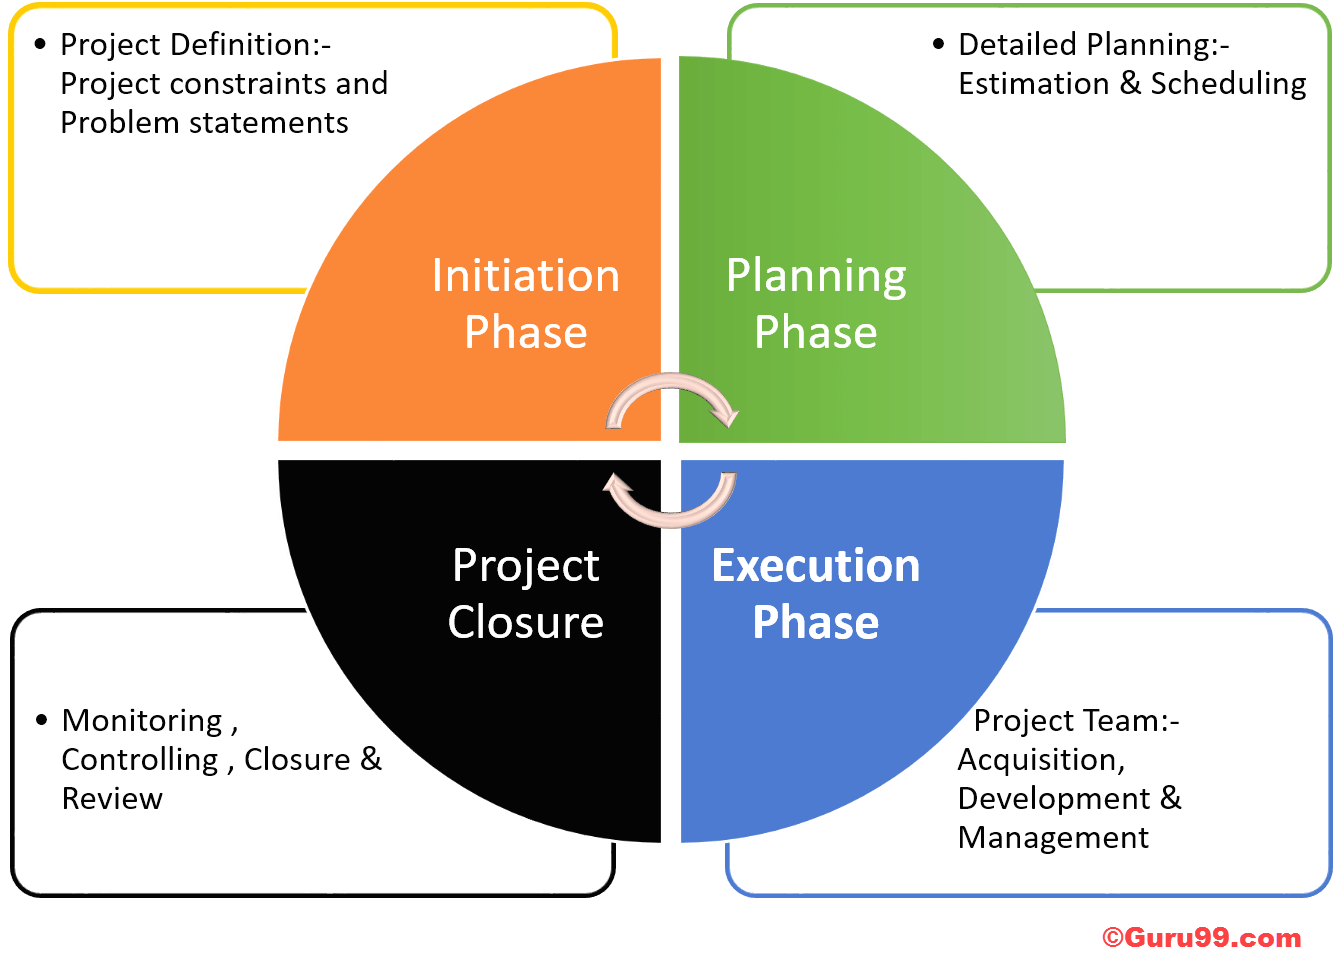 Project Management Logo: Project Management Life Cycle: Complete Guide